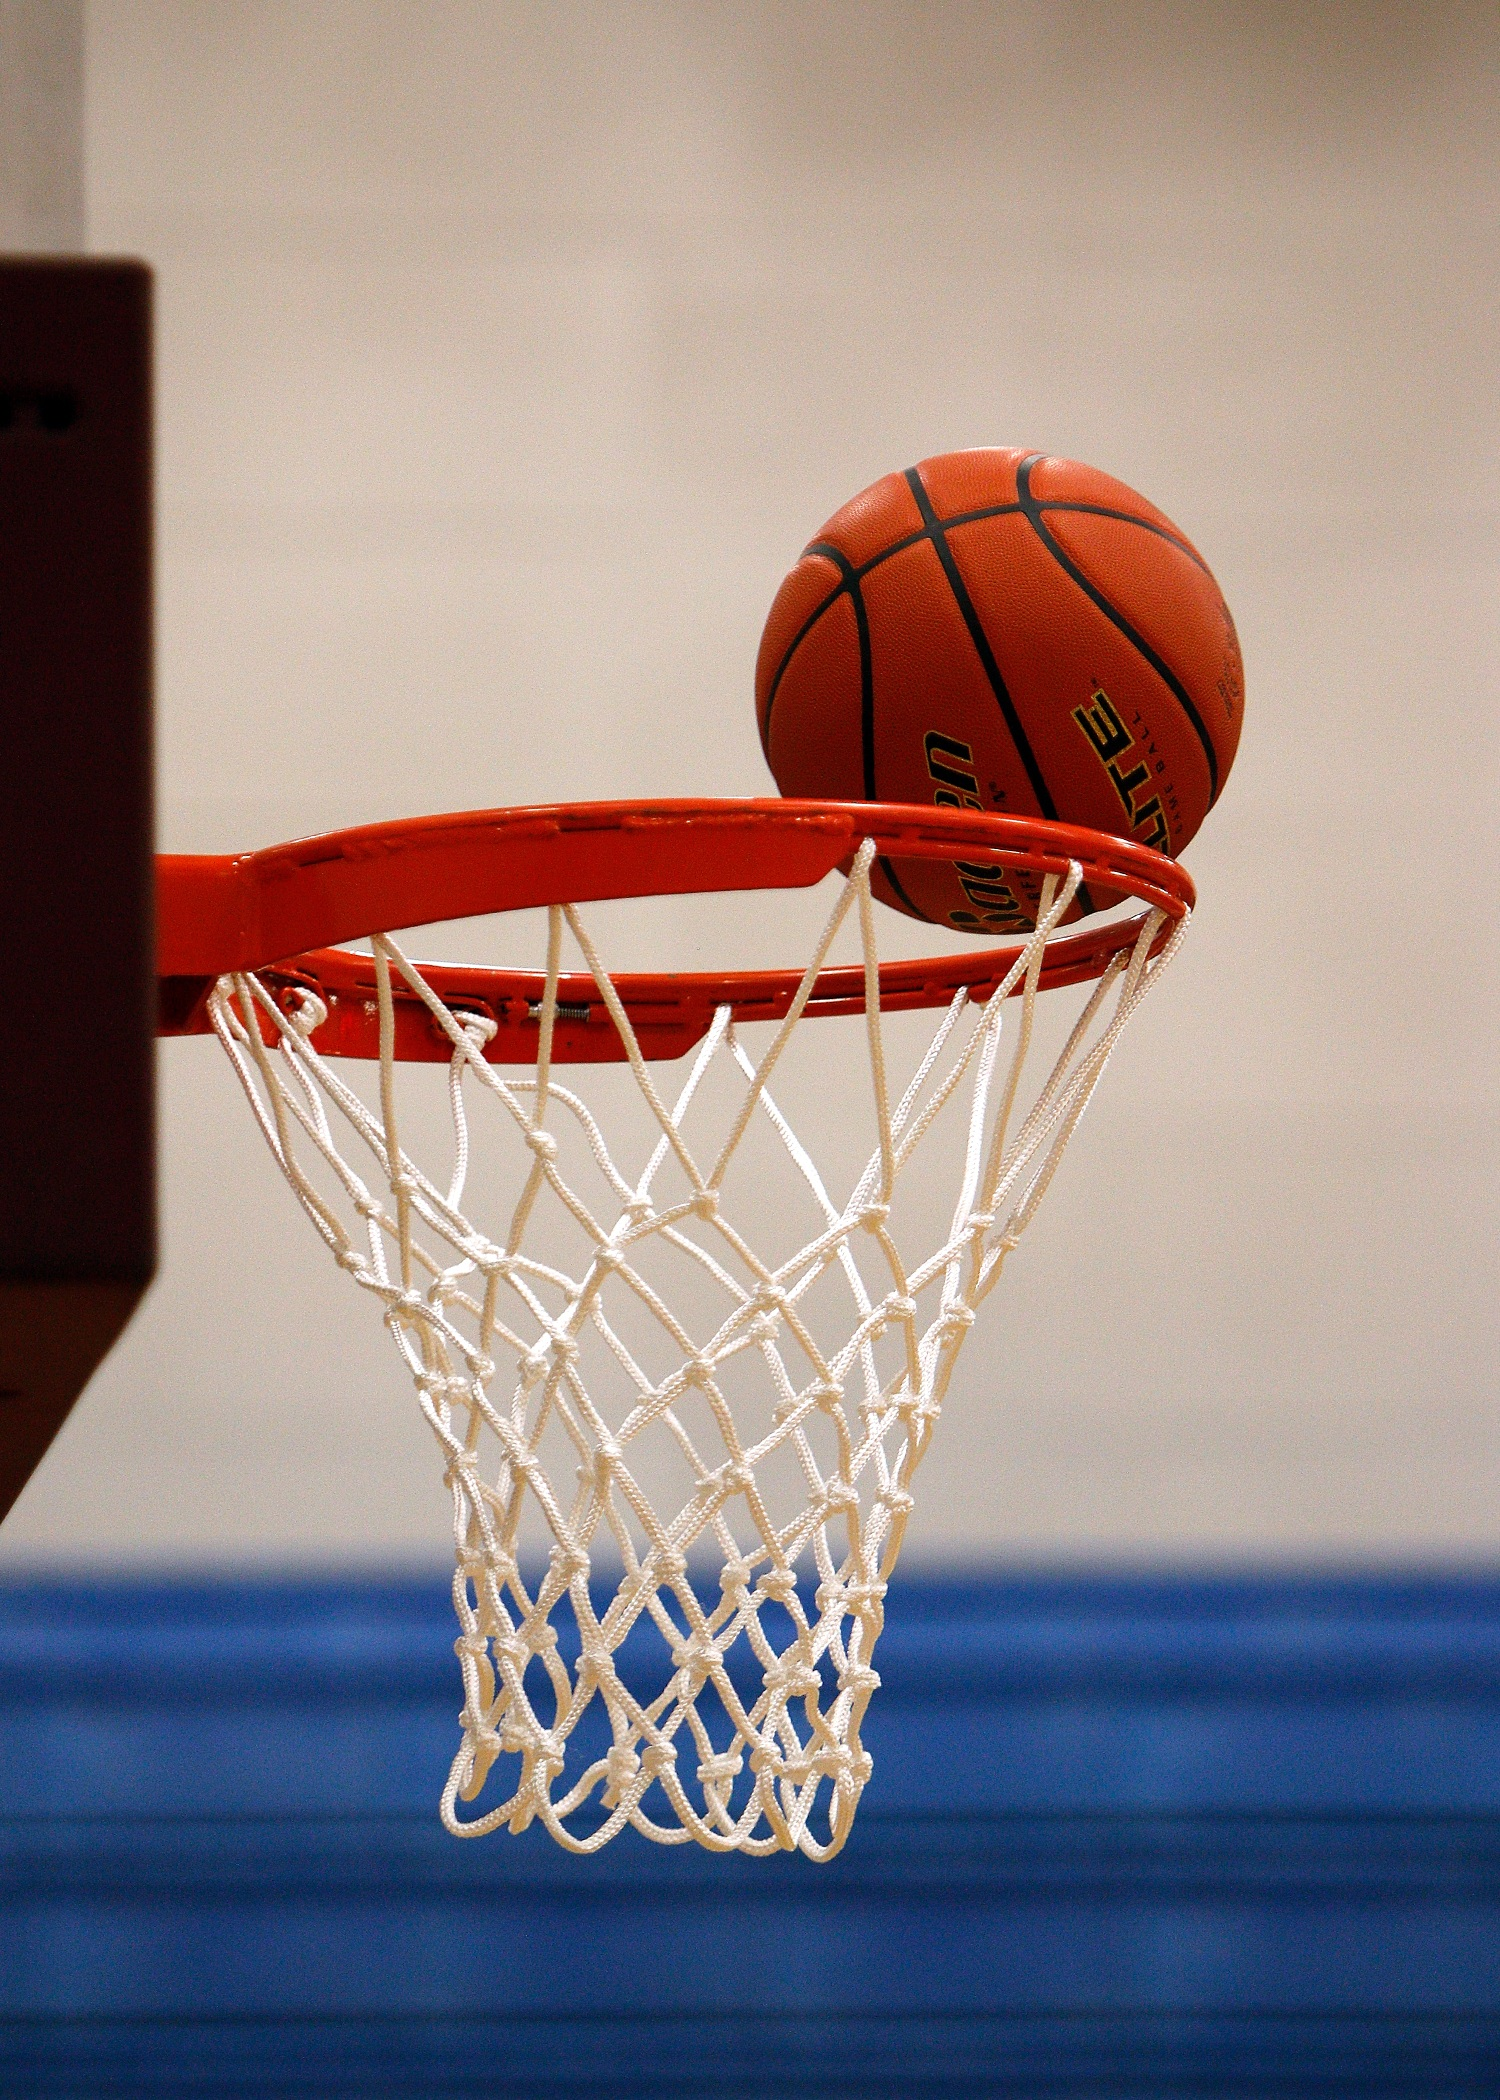 free stock photos of basketball pexels